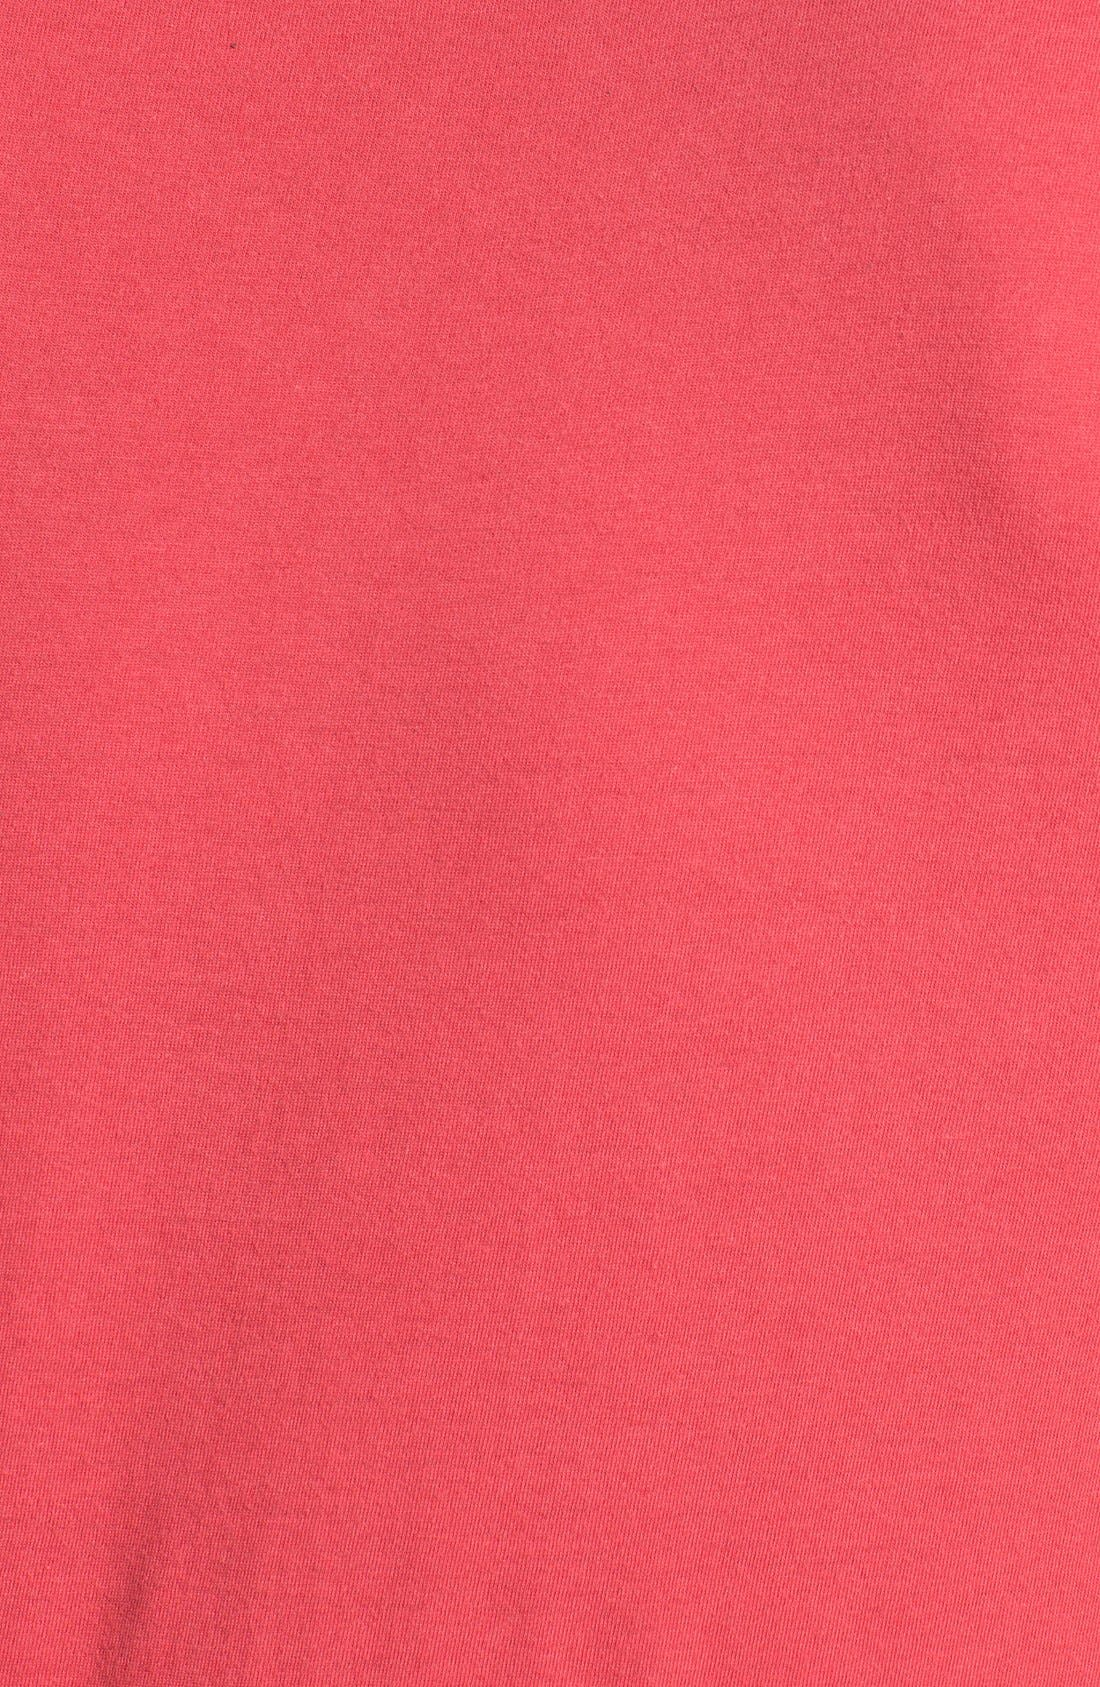 Alternate Image 3  - Red Jacket 'St. Louis Cardinals' Regular Fit Crewneck T-Shirt (Men)